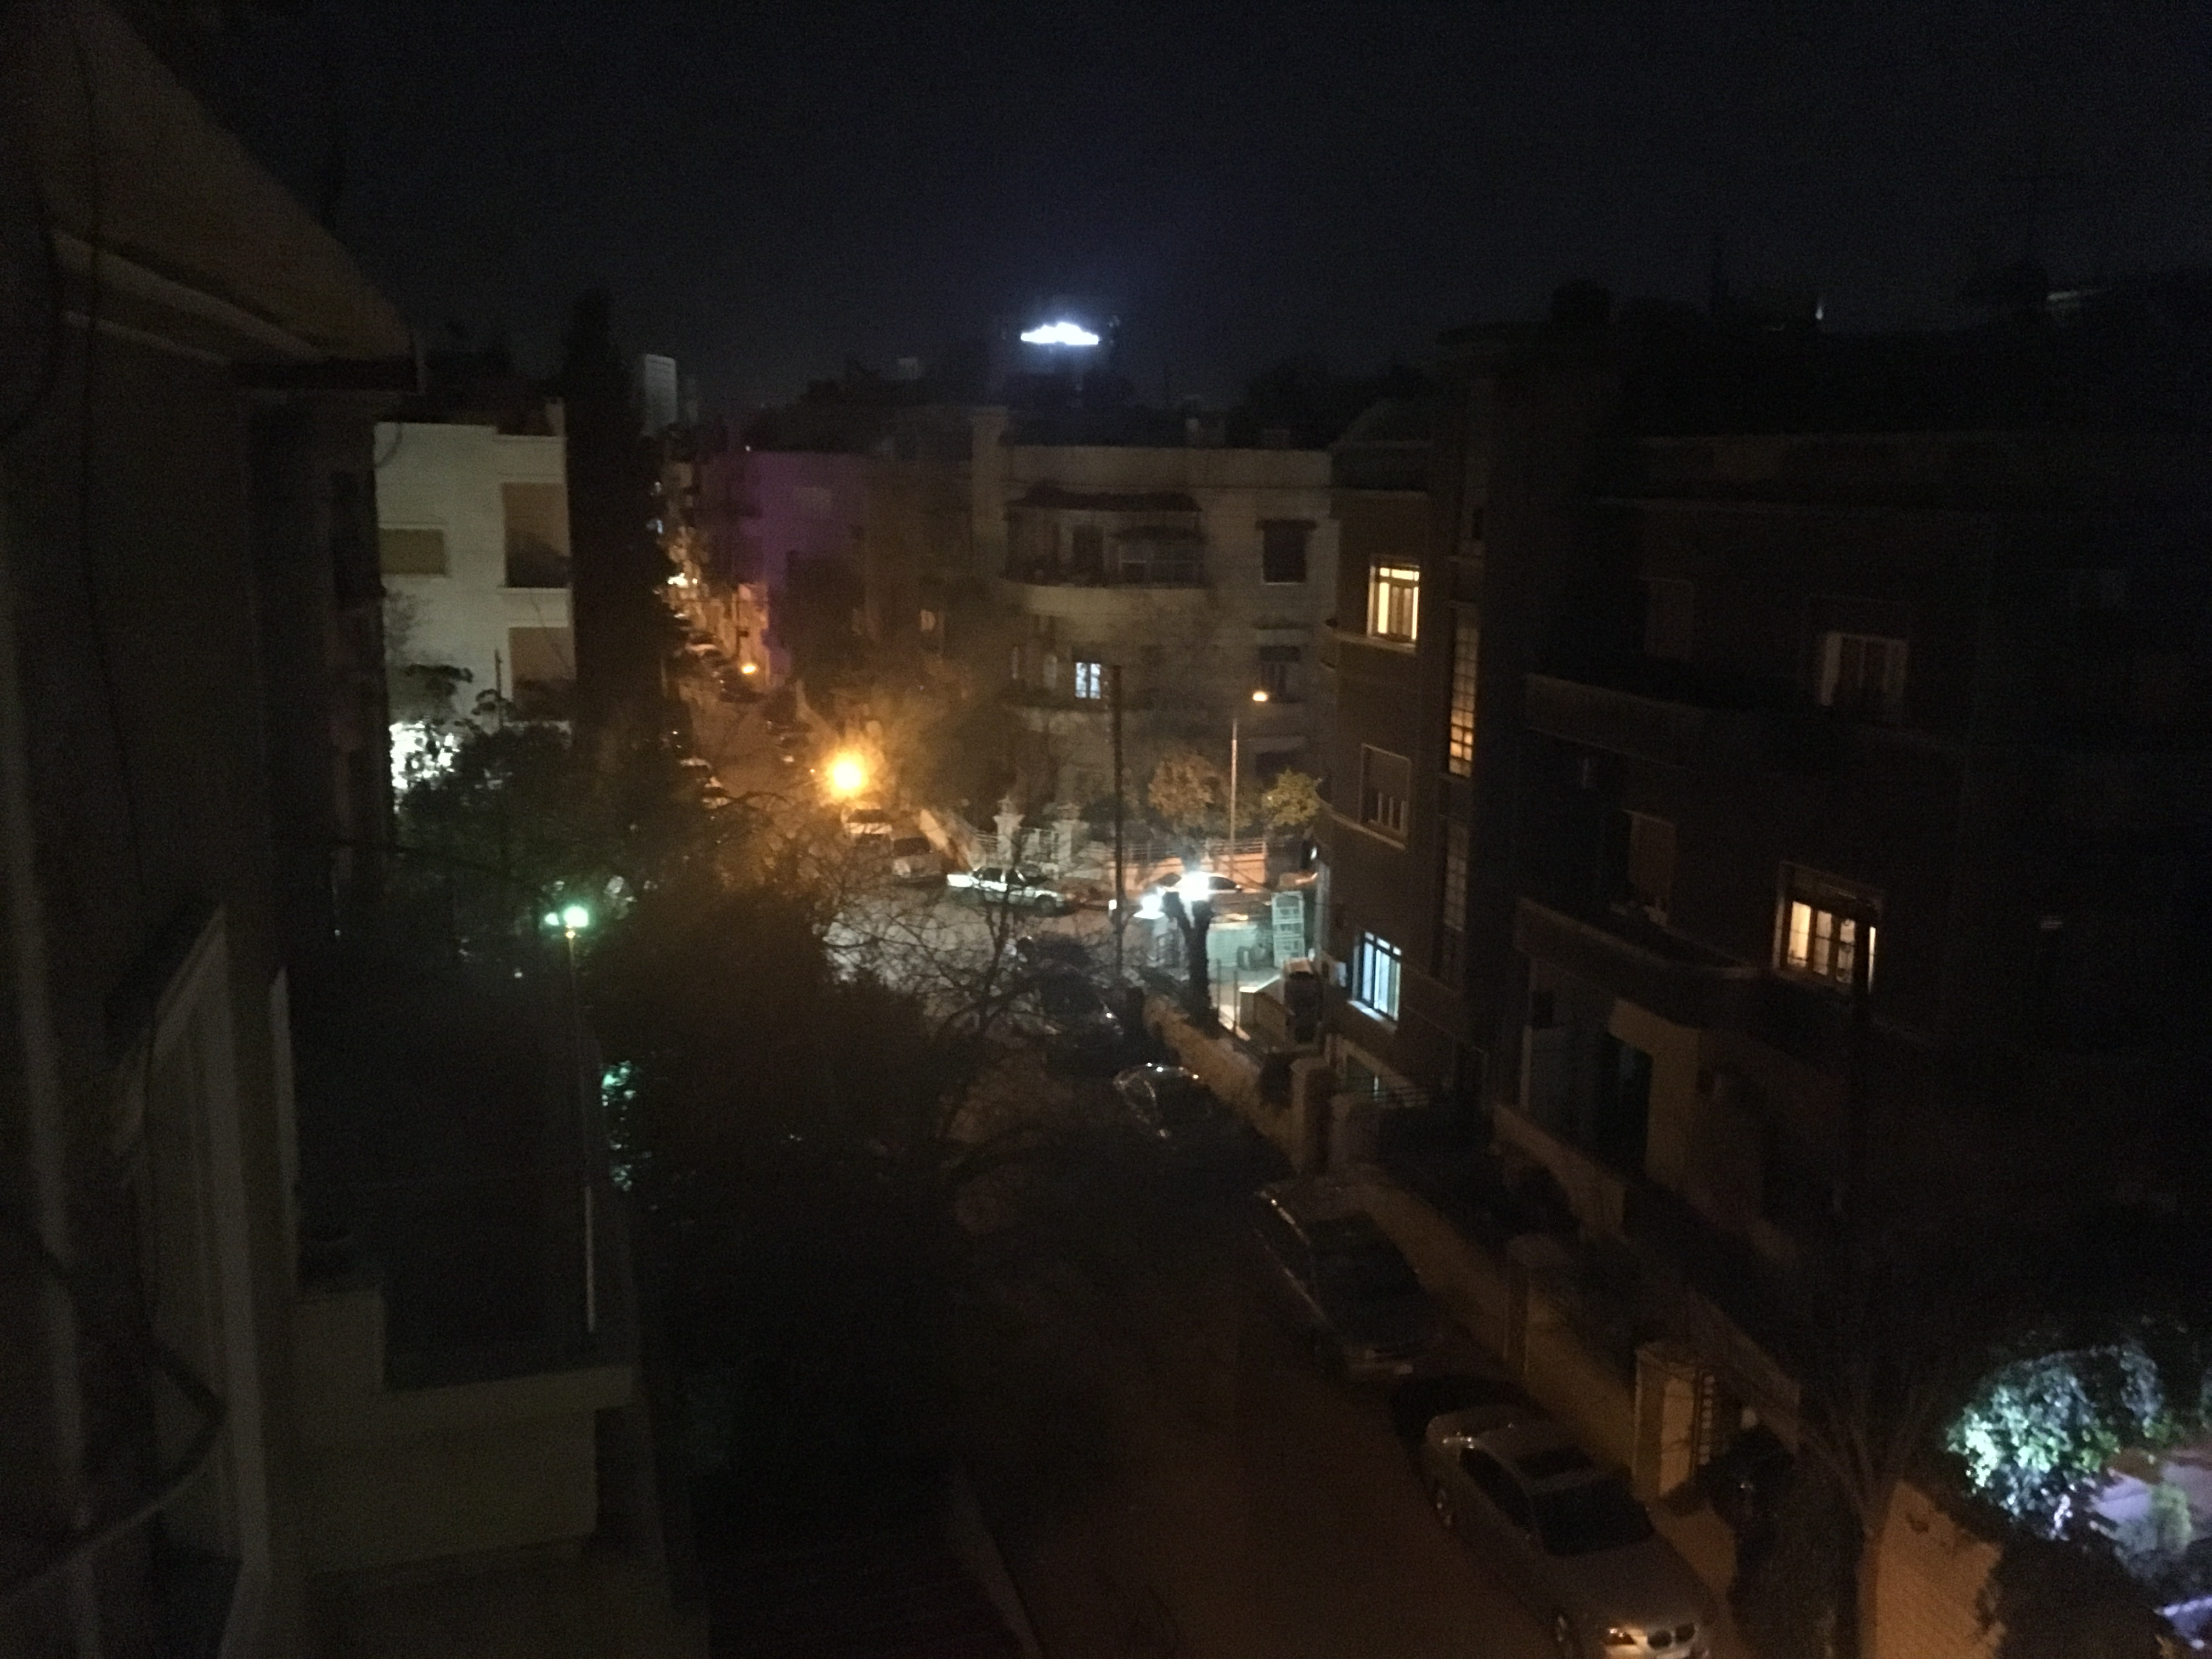 25. Damascus at night. Photo 03 03 2018 23.34.02